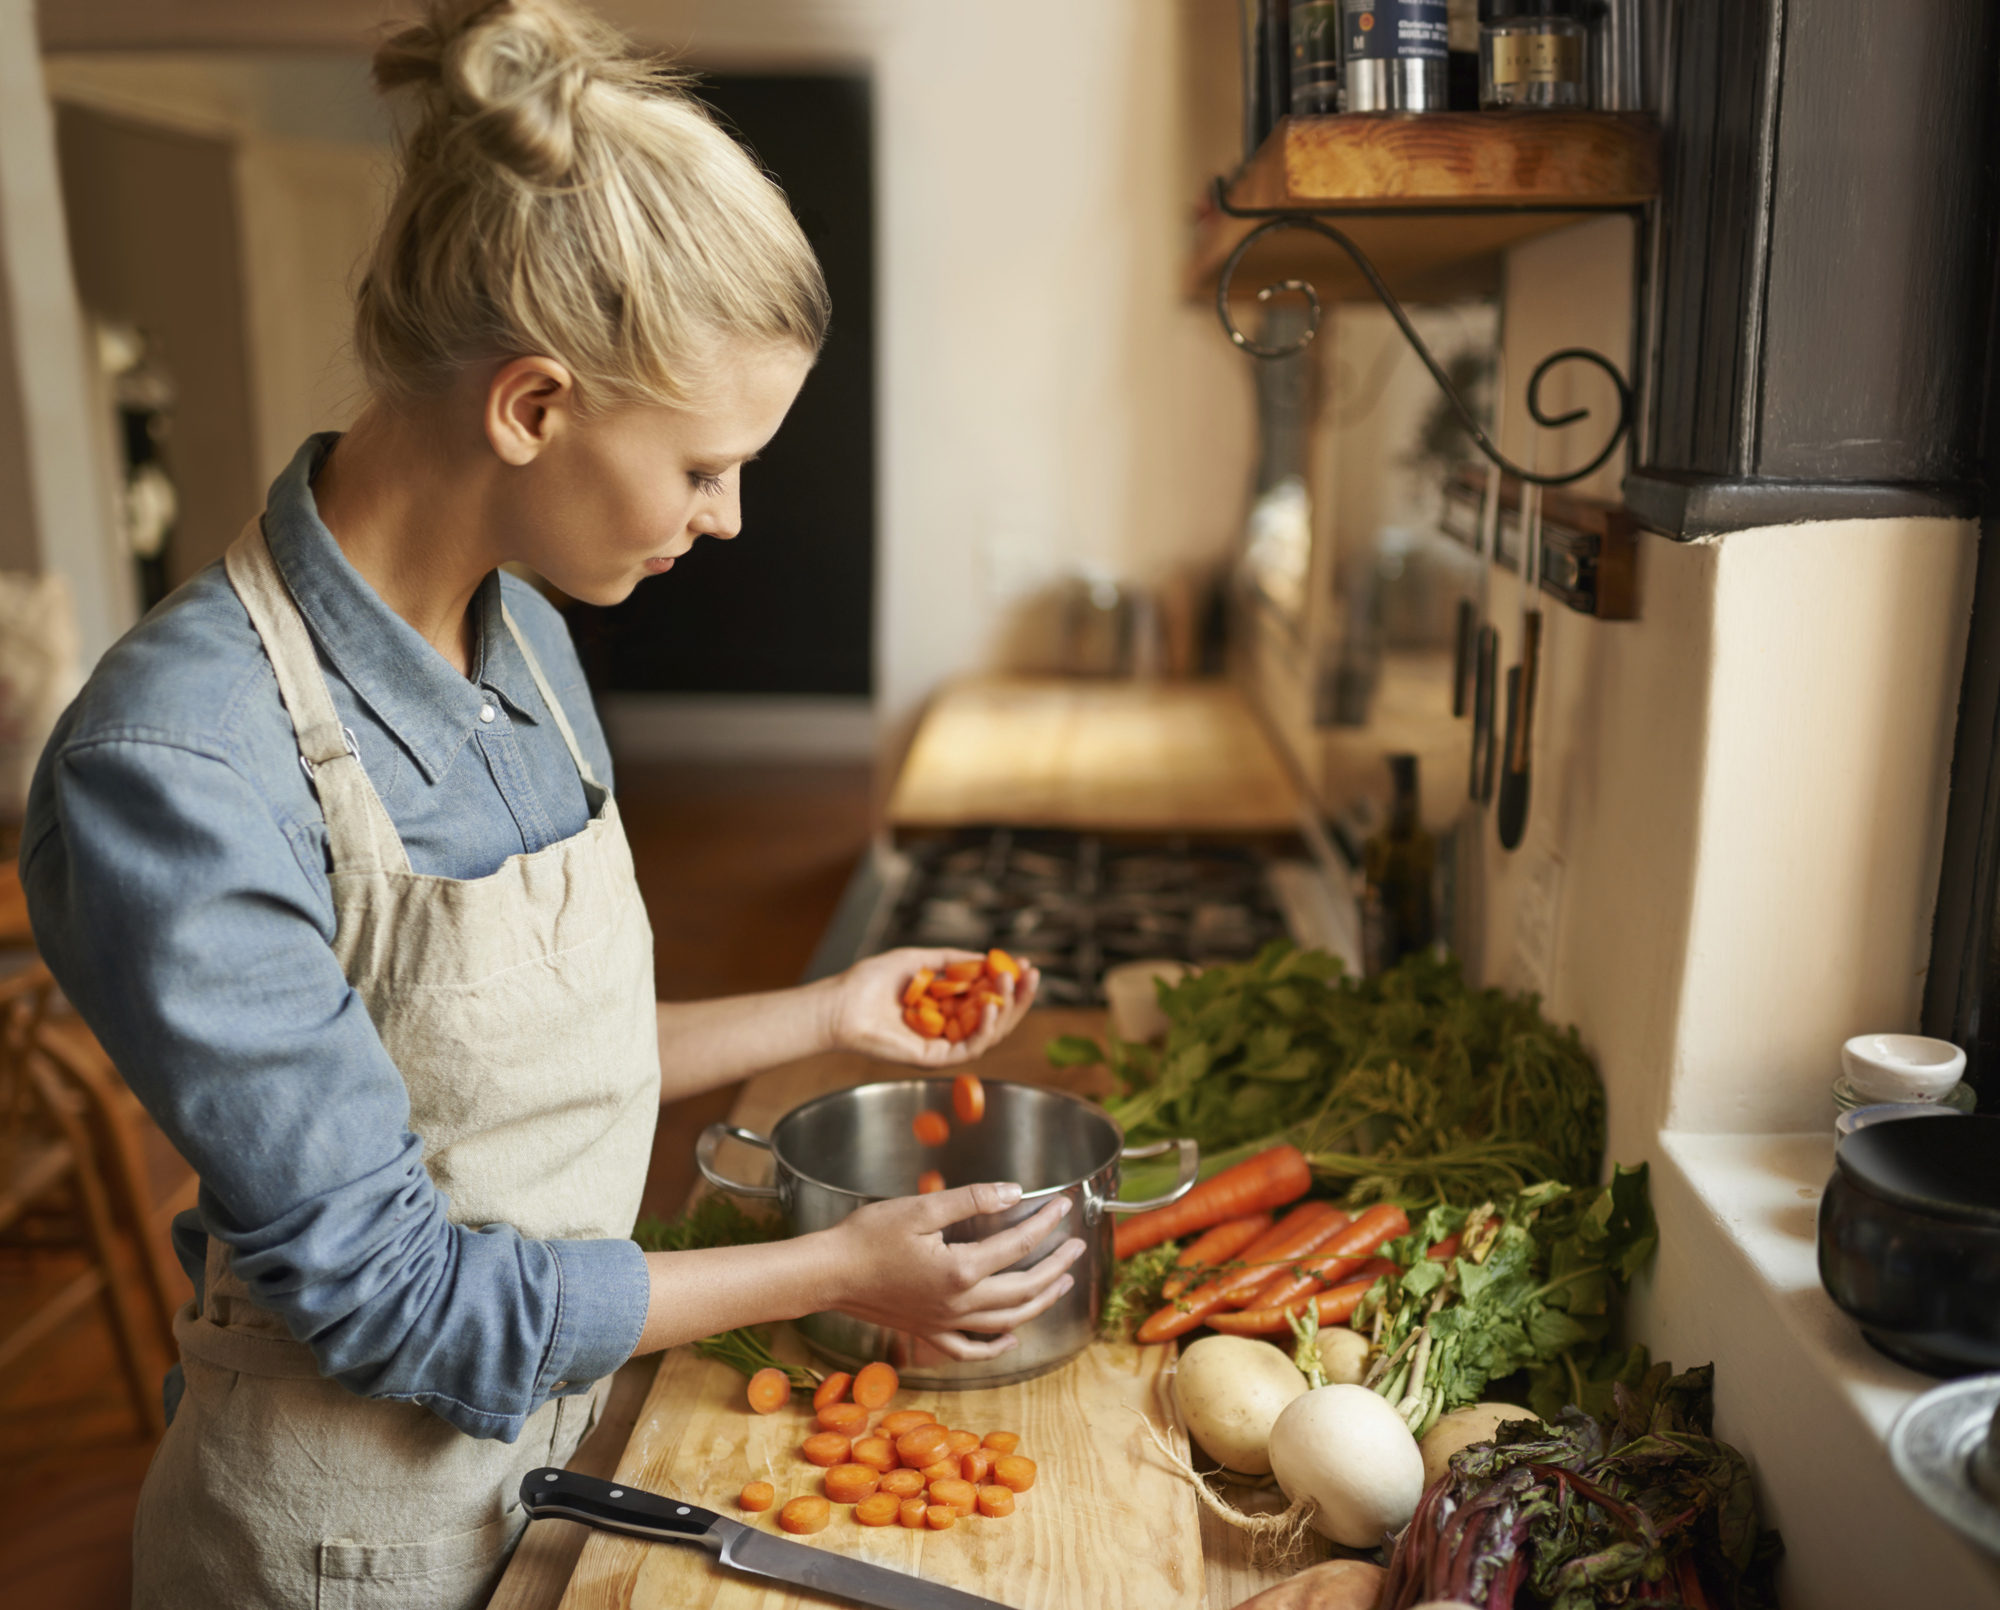 Woman prepping vegetables